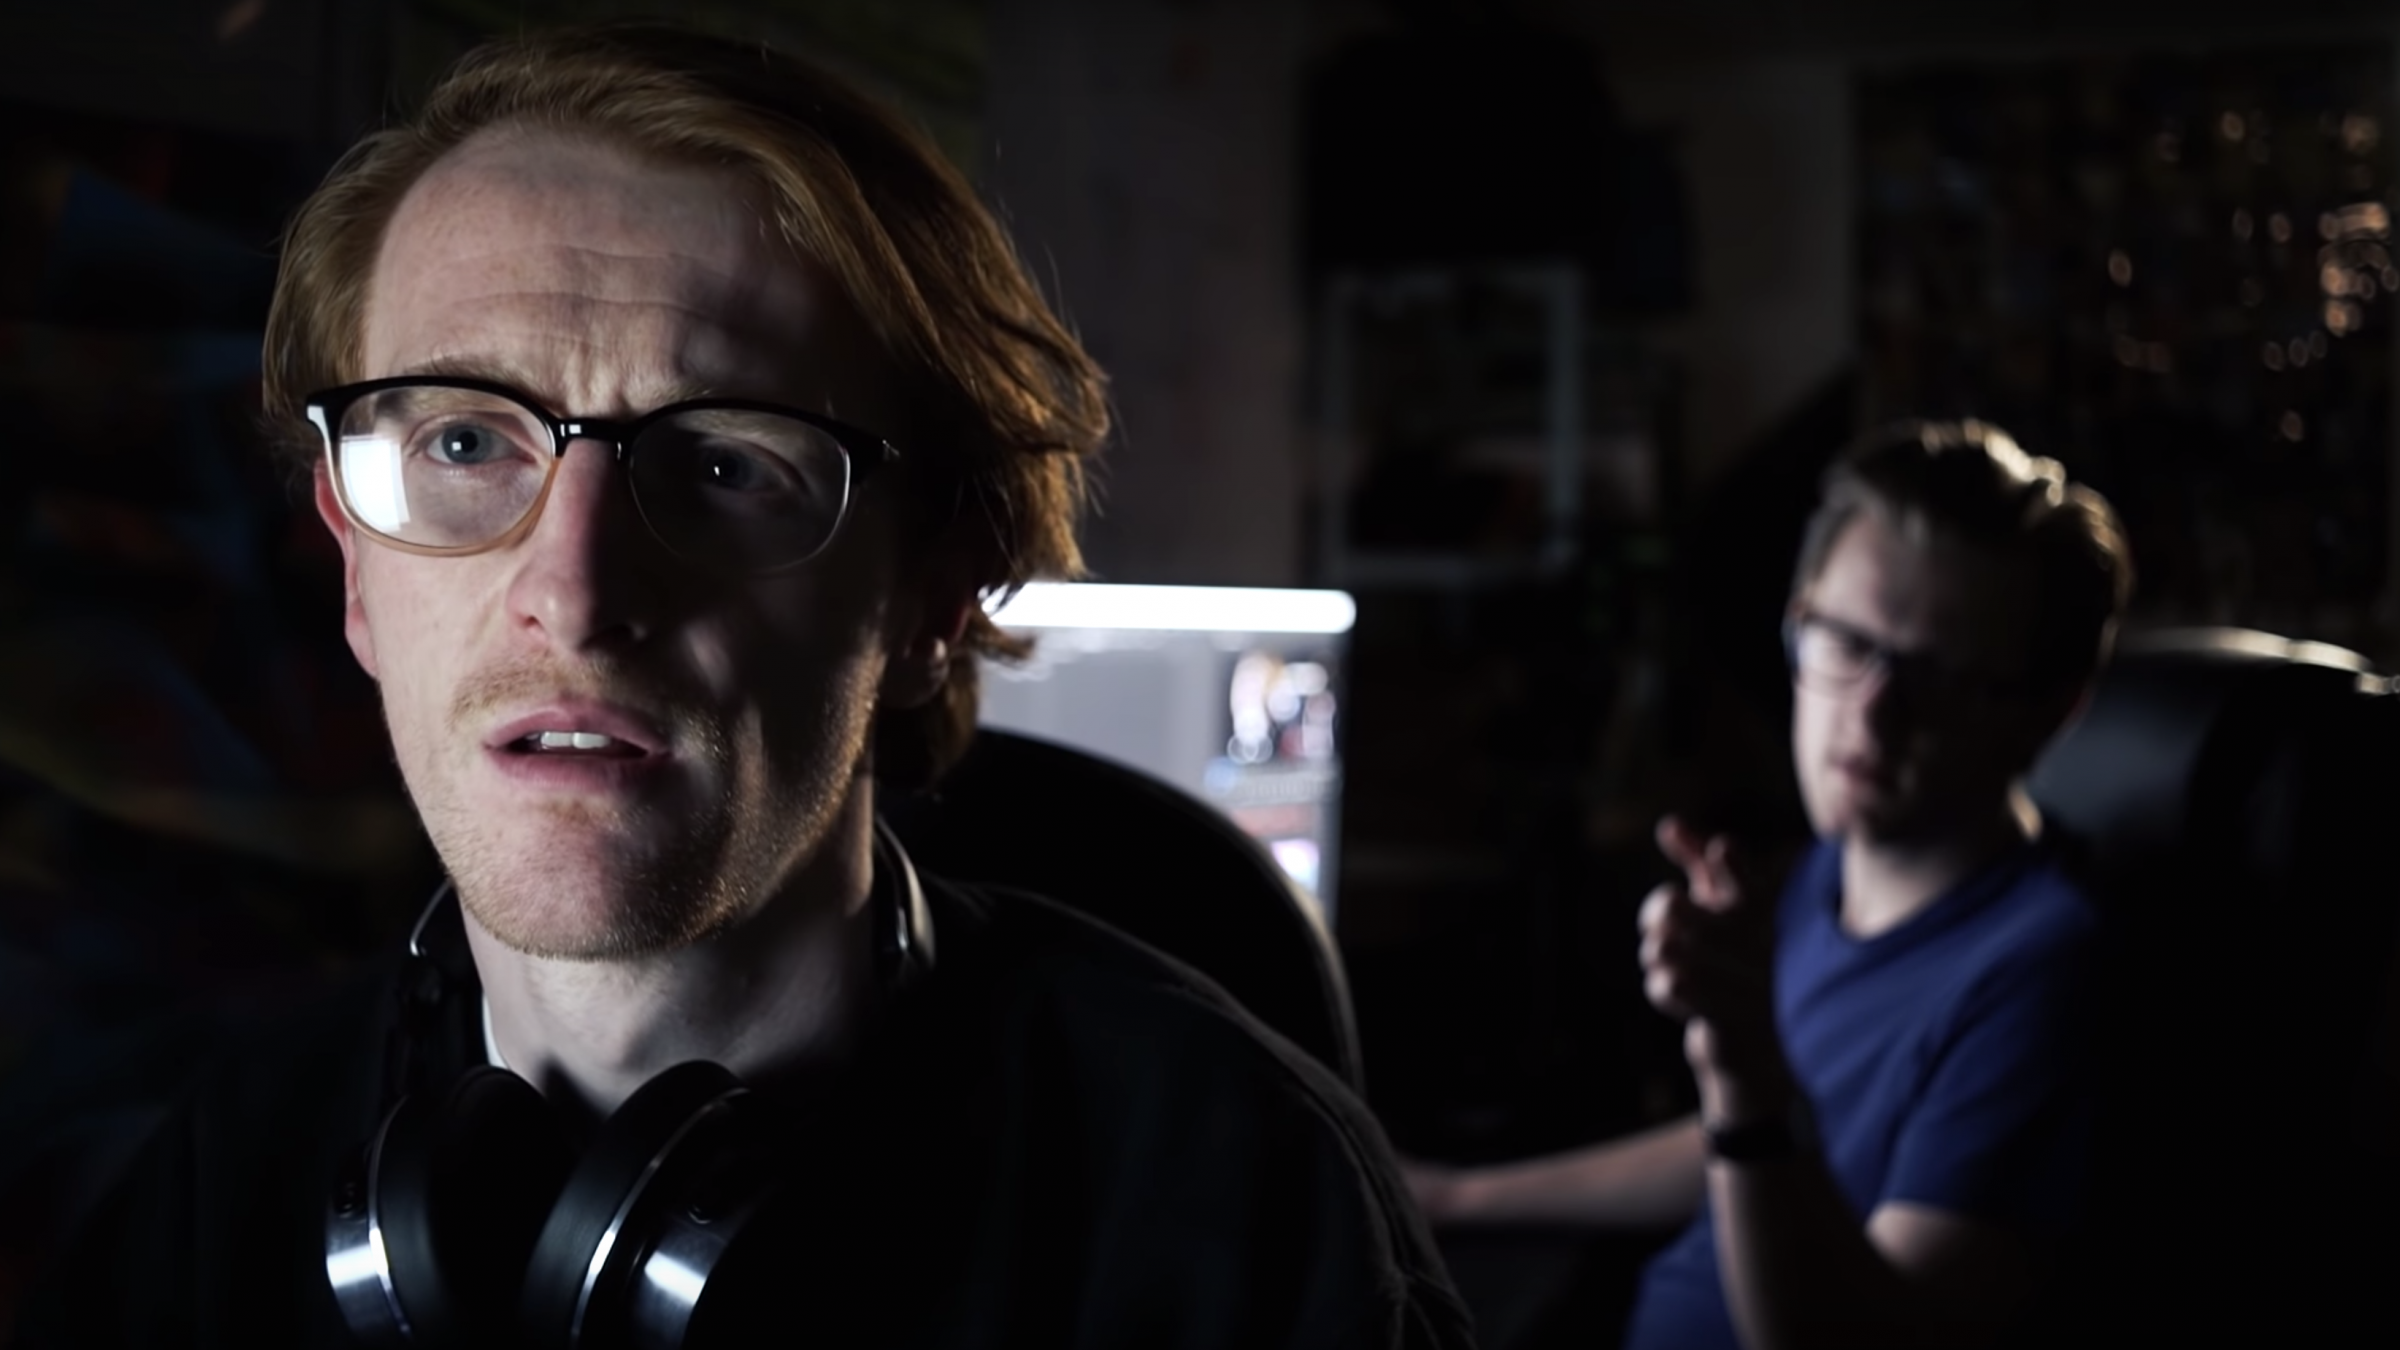 How to Mimic the Lighting of a Computer Screen for Your Film